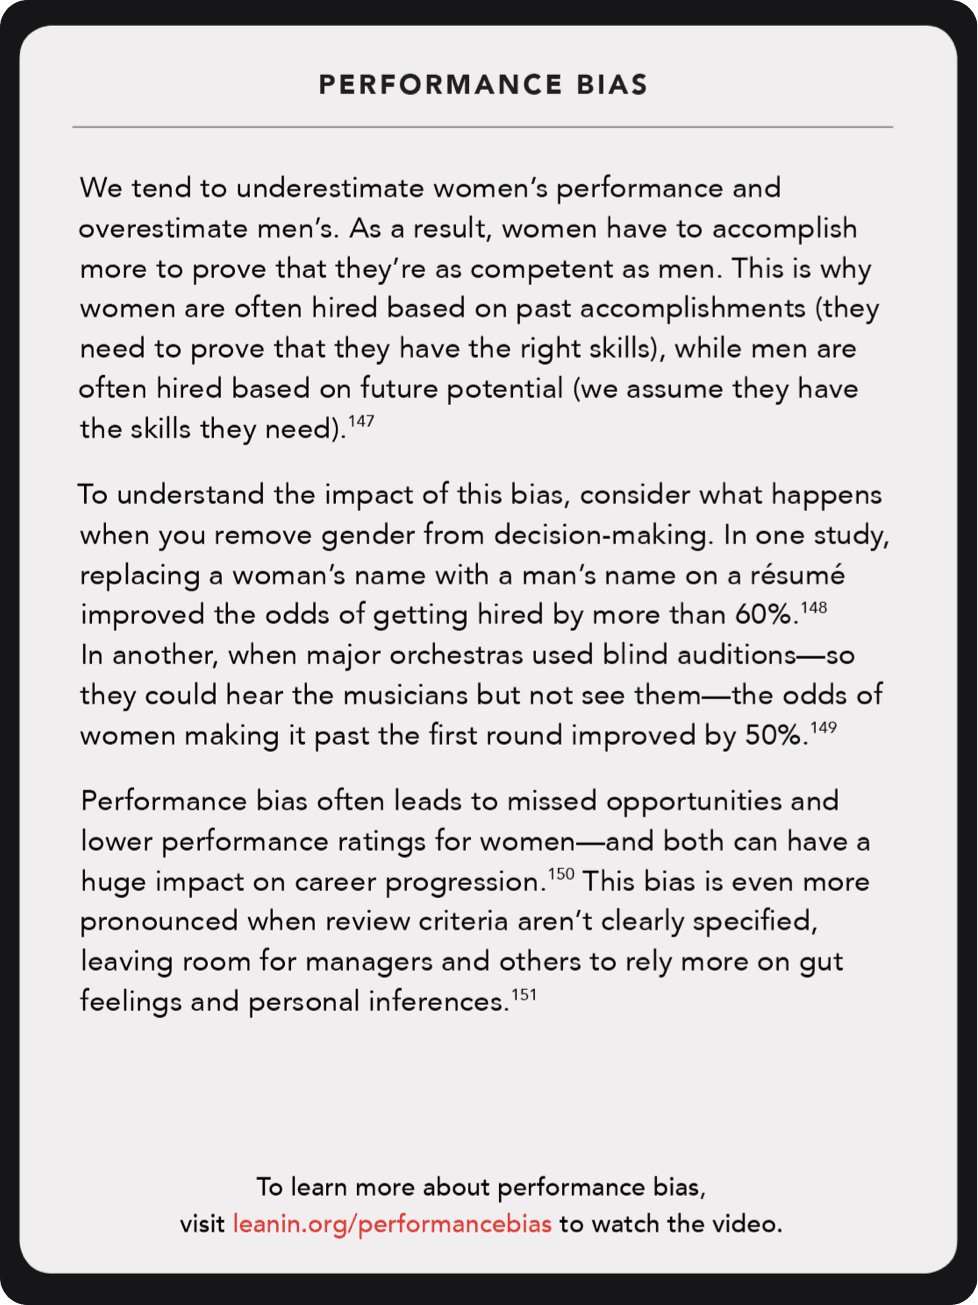 Back of card: We tend to underestimate women's performance and overestimate men's. As a result, women have to accomplish more to prove that they're as competent as men.